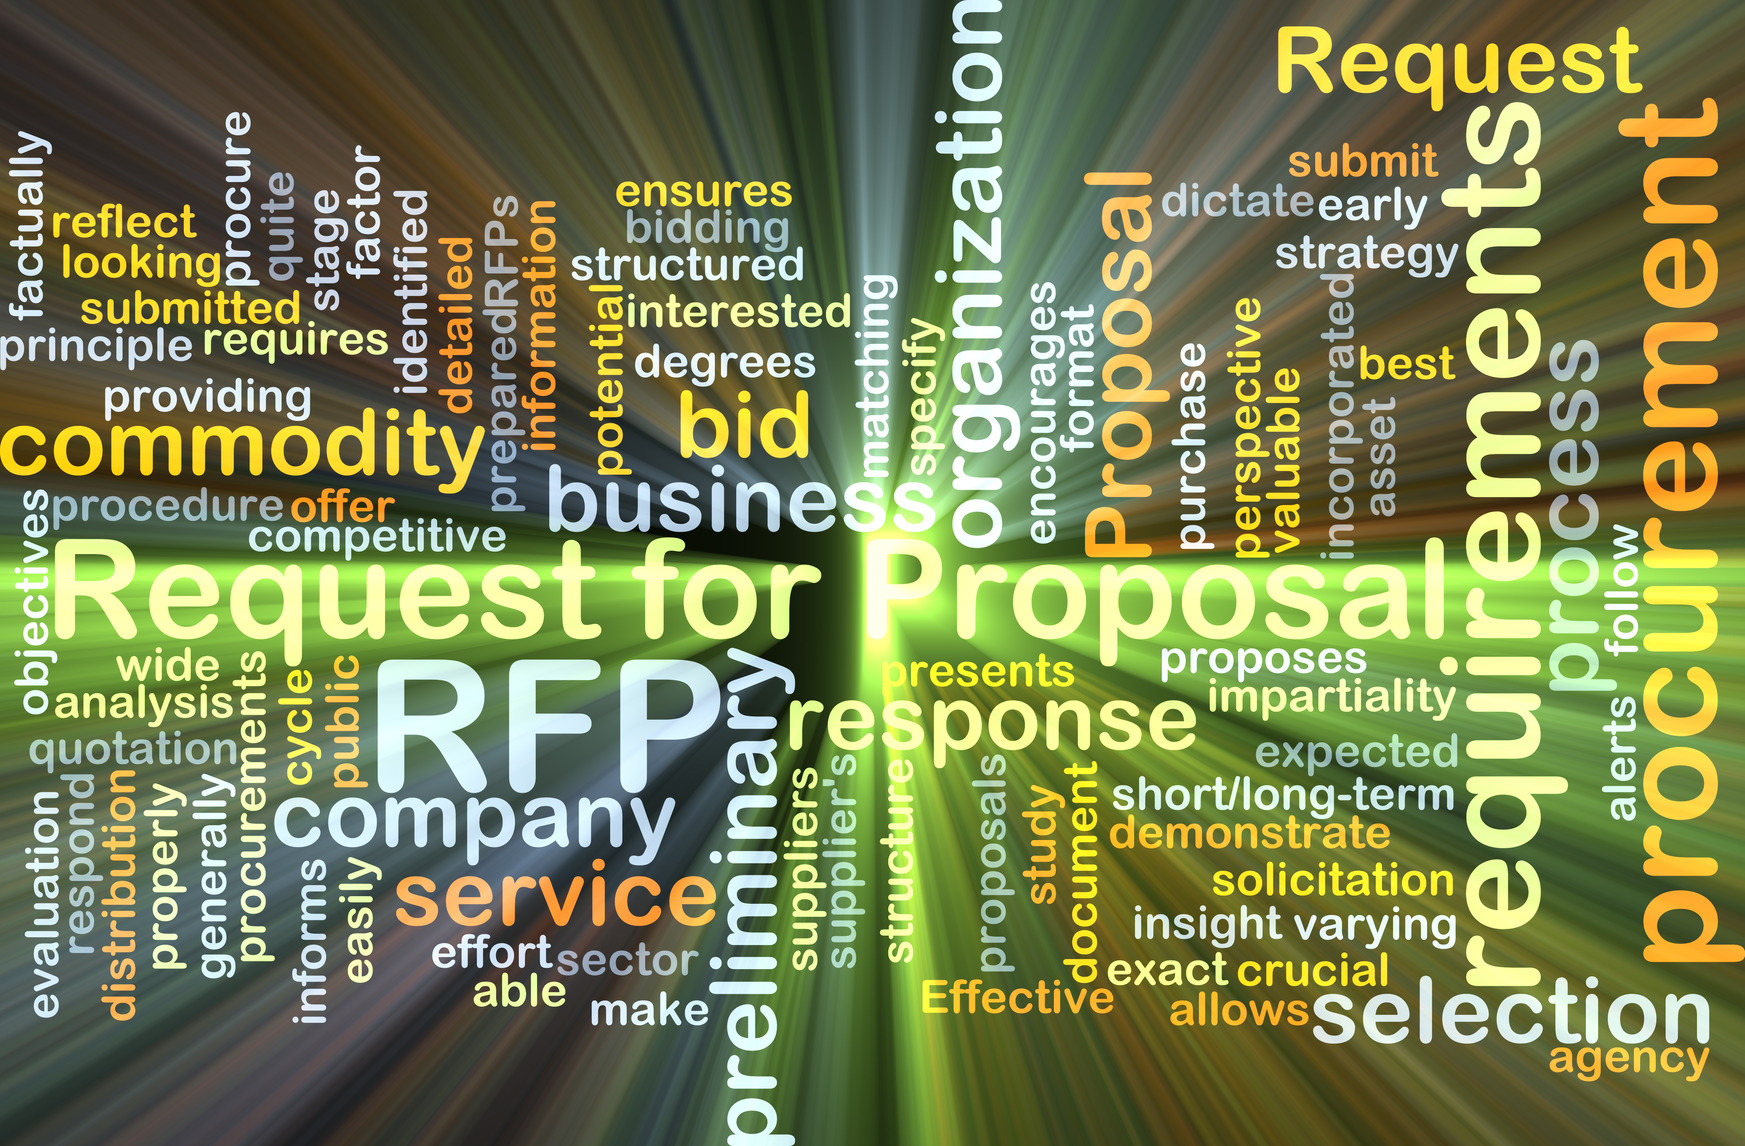 Request for proposal RFP background concept glowing   Aerial     Background concept wordcloud illustration of request for proposal RFP  glowing light